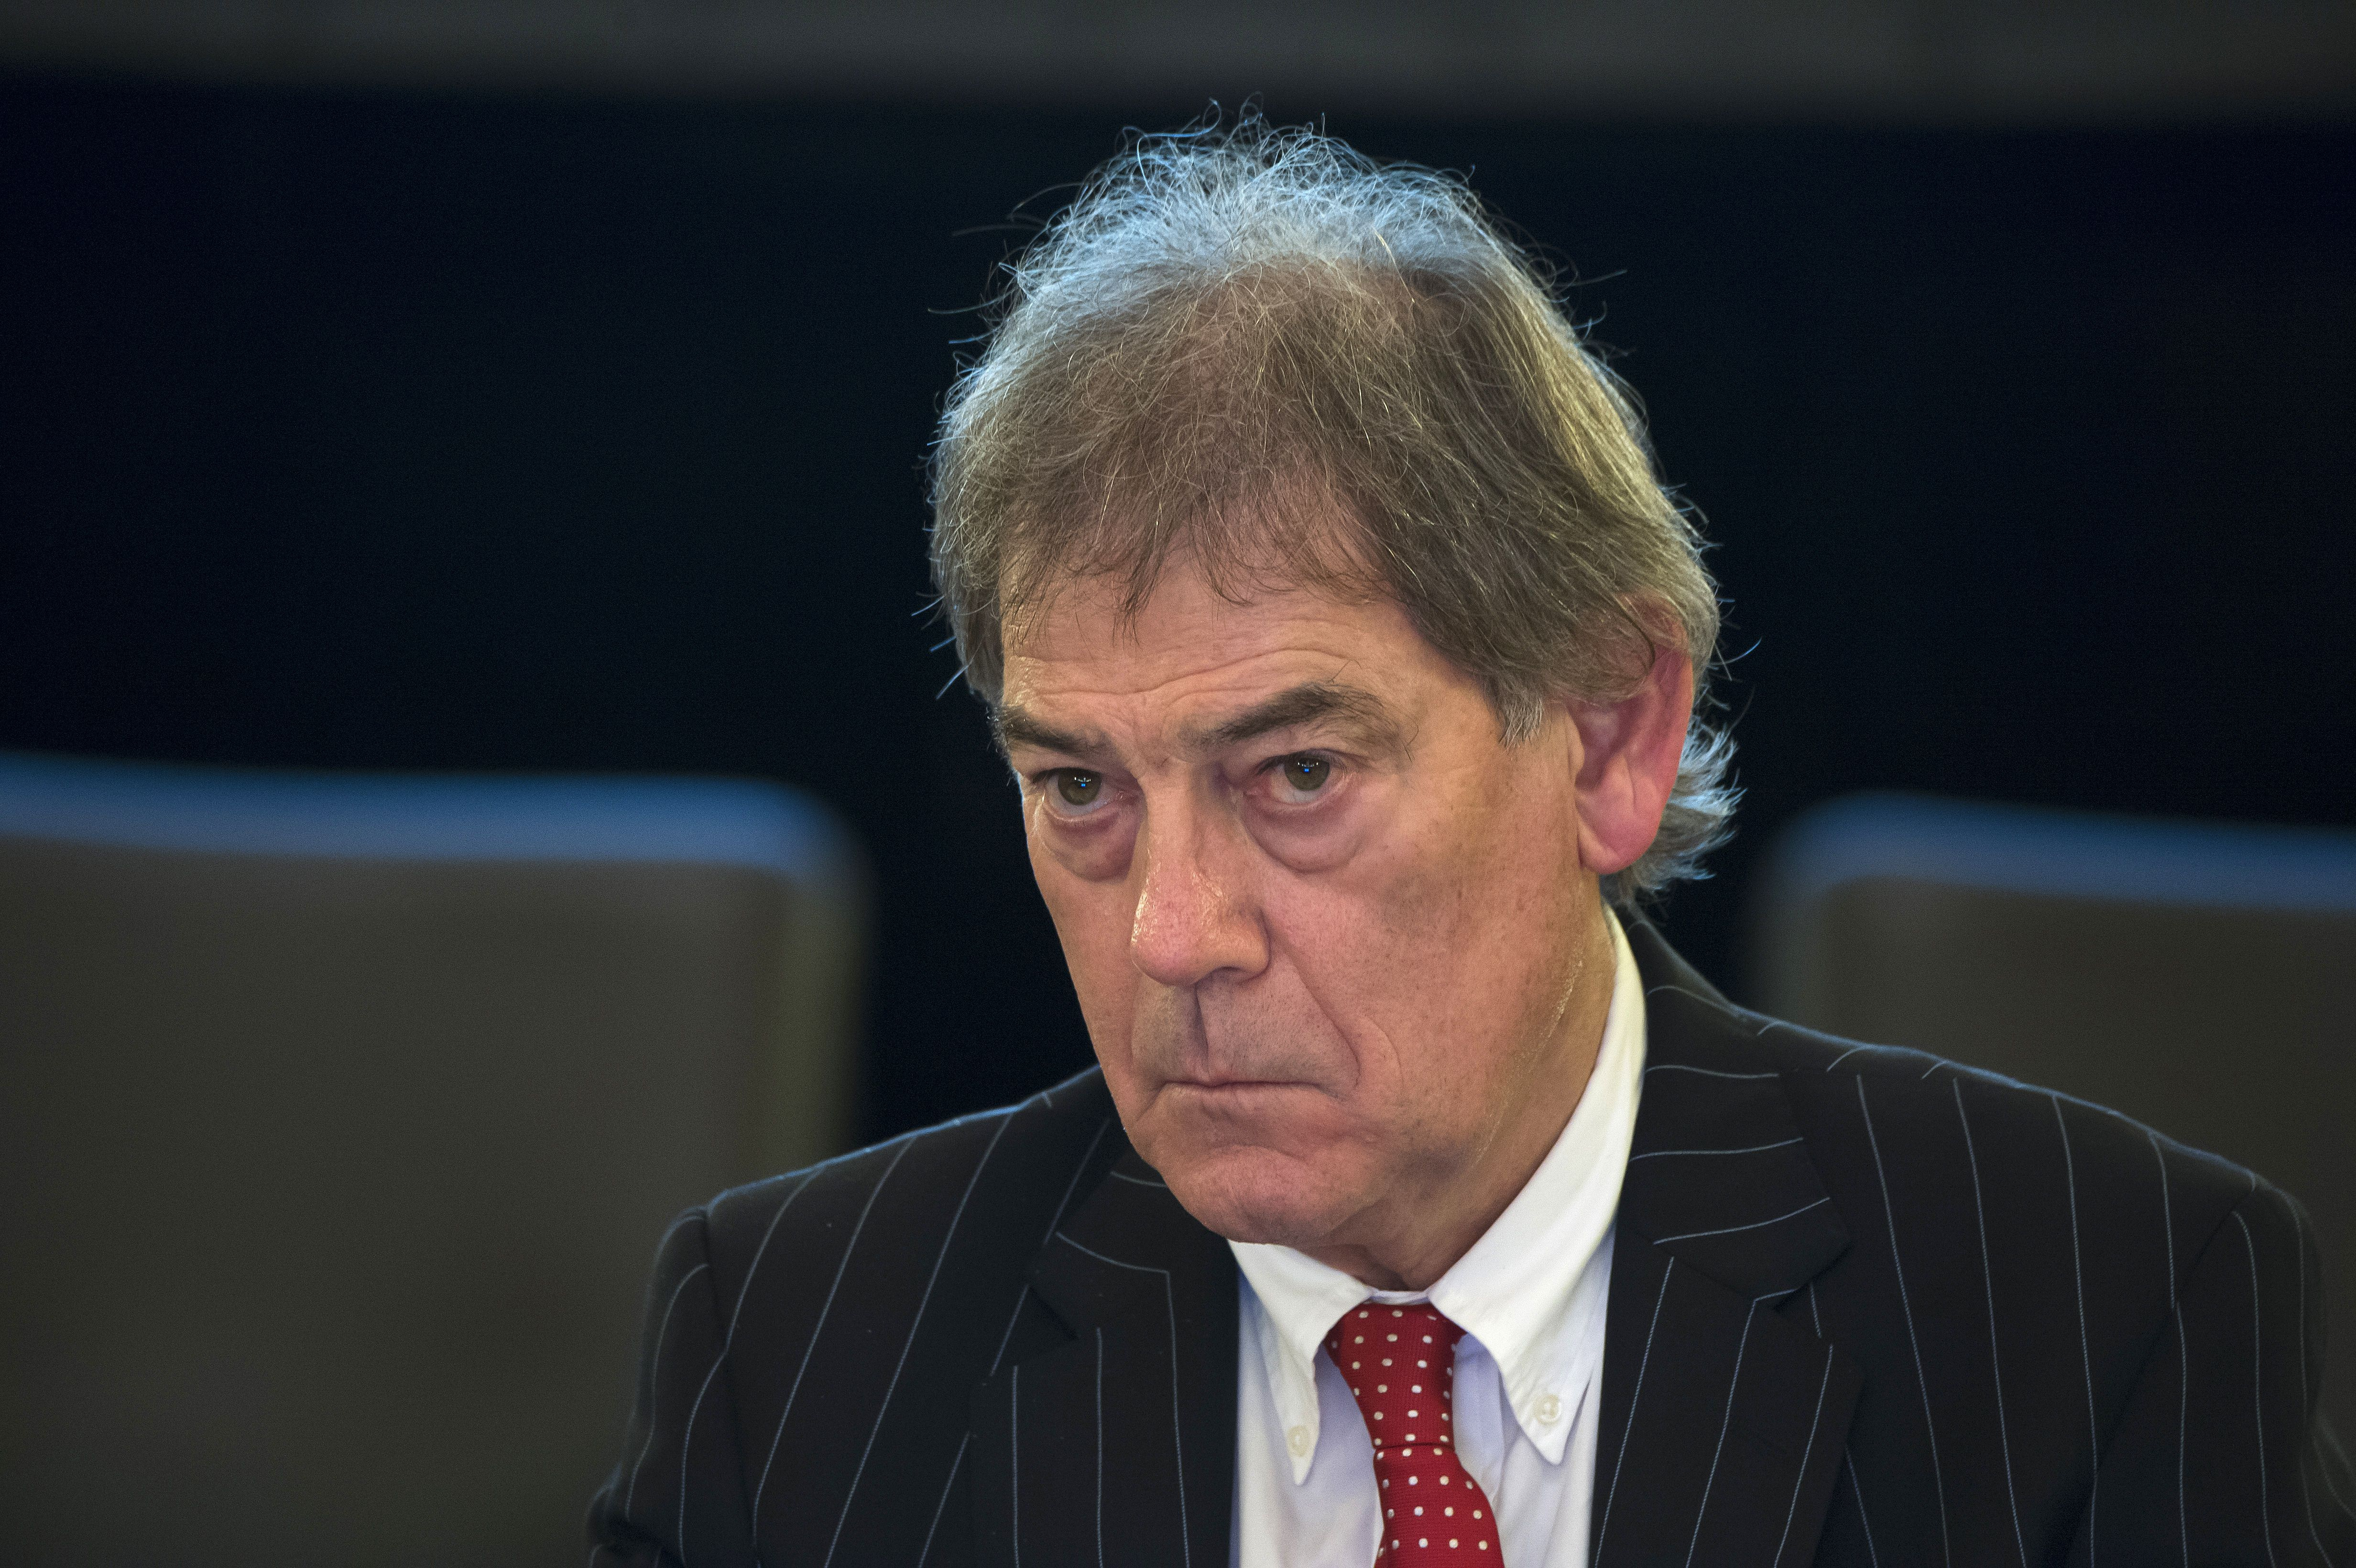 David Howman has been Director General of the World Anti-Doping Agency since 2003.